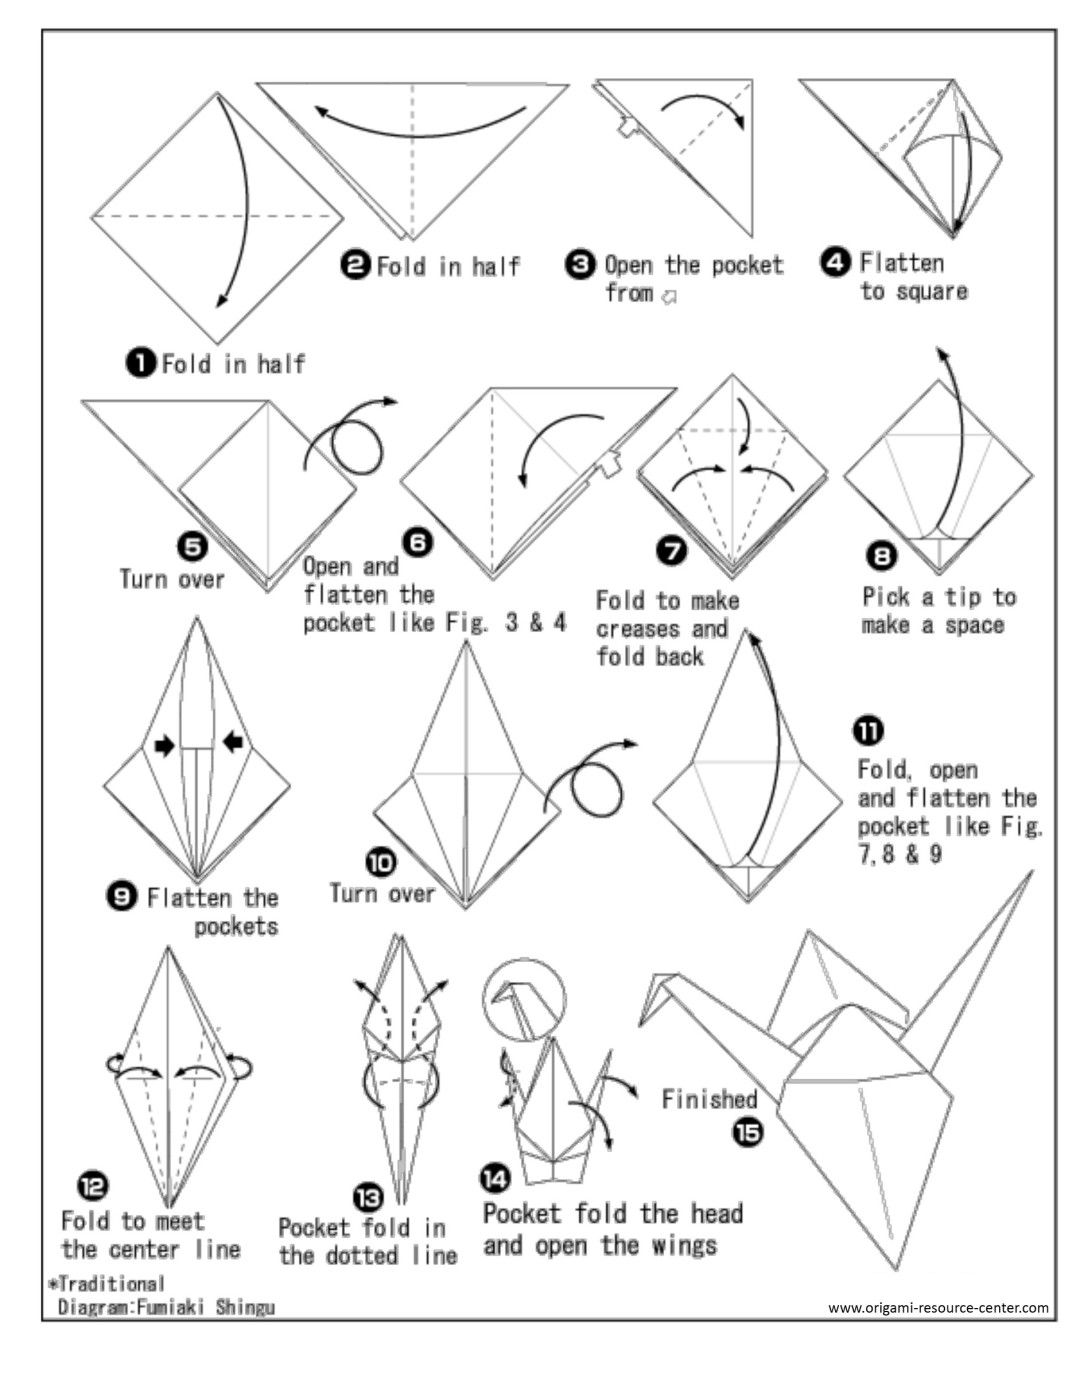 A Paper Crane Make A Paper Crane To Put In With A Letter